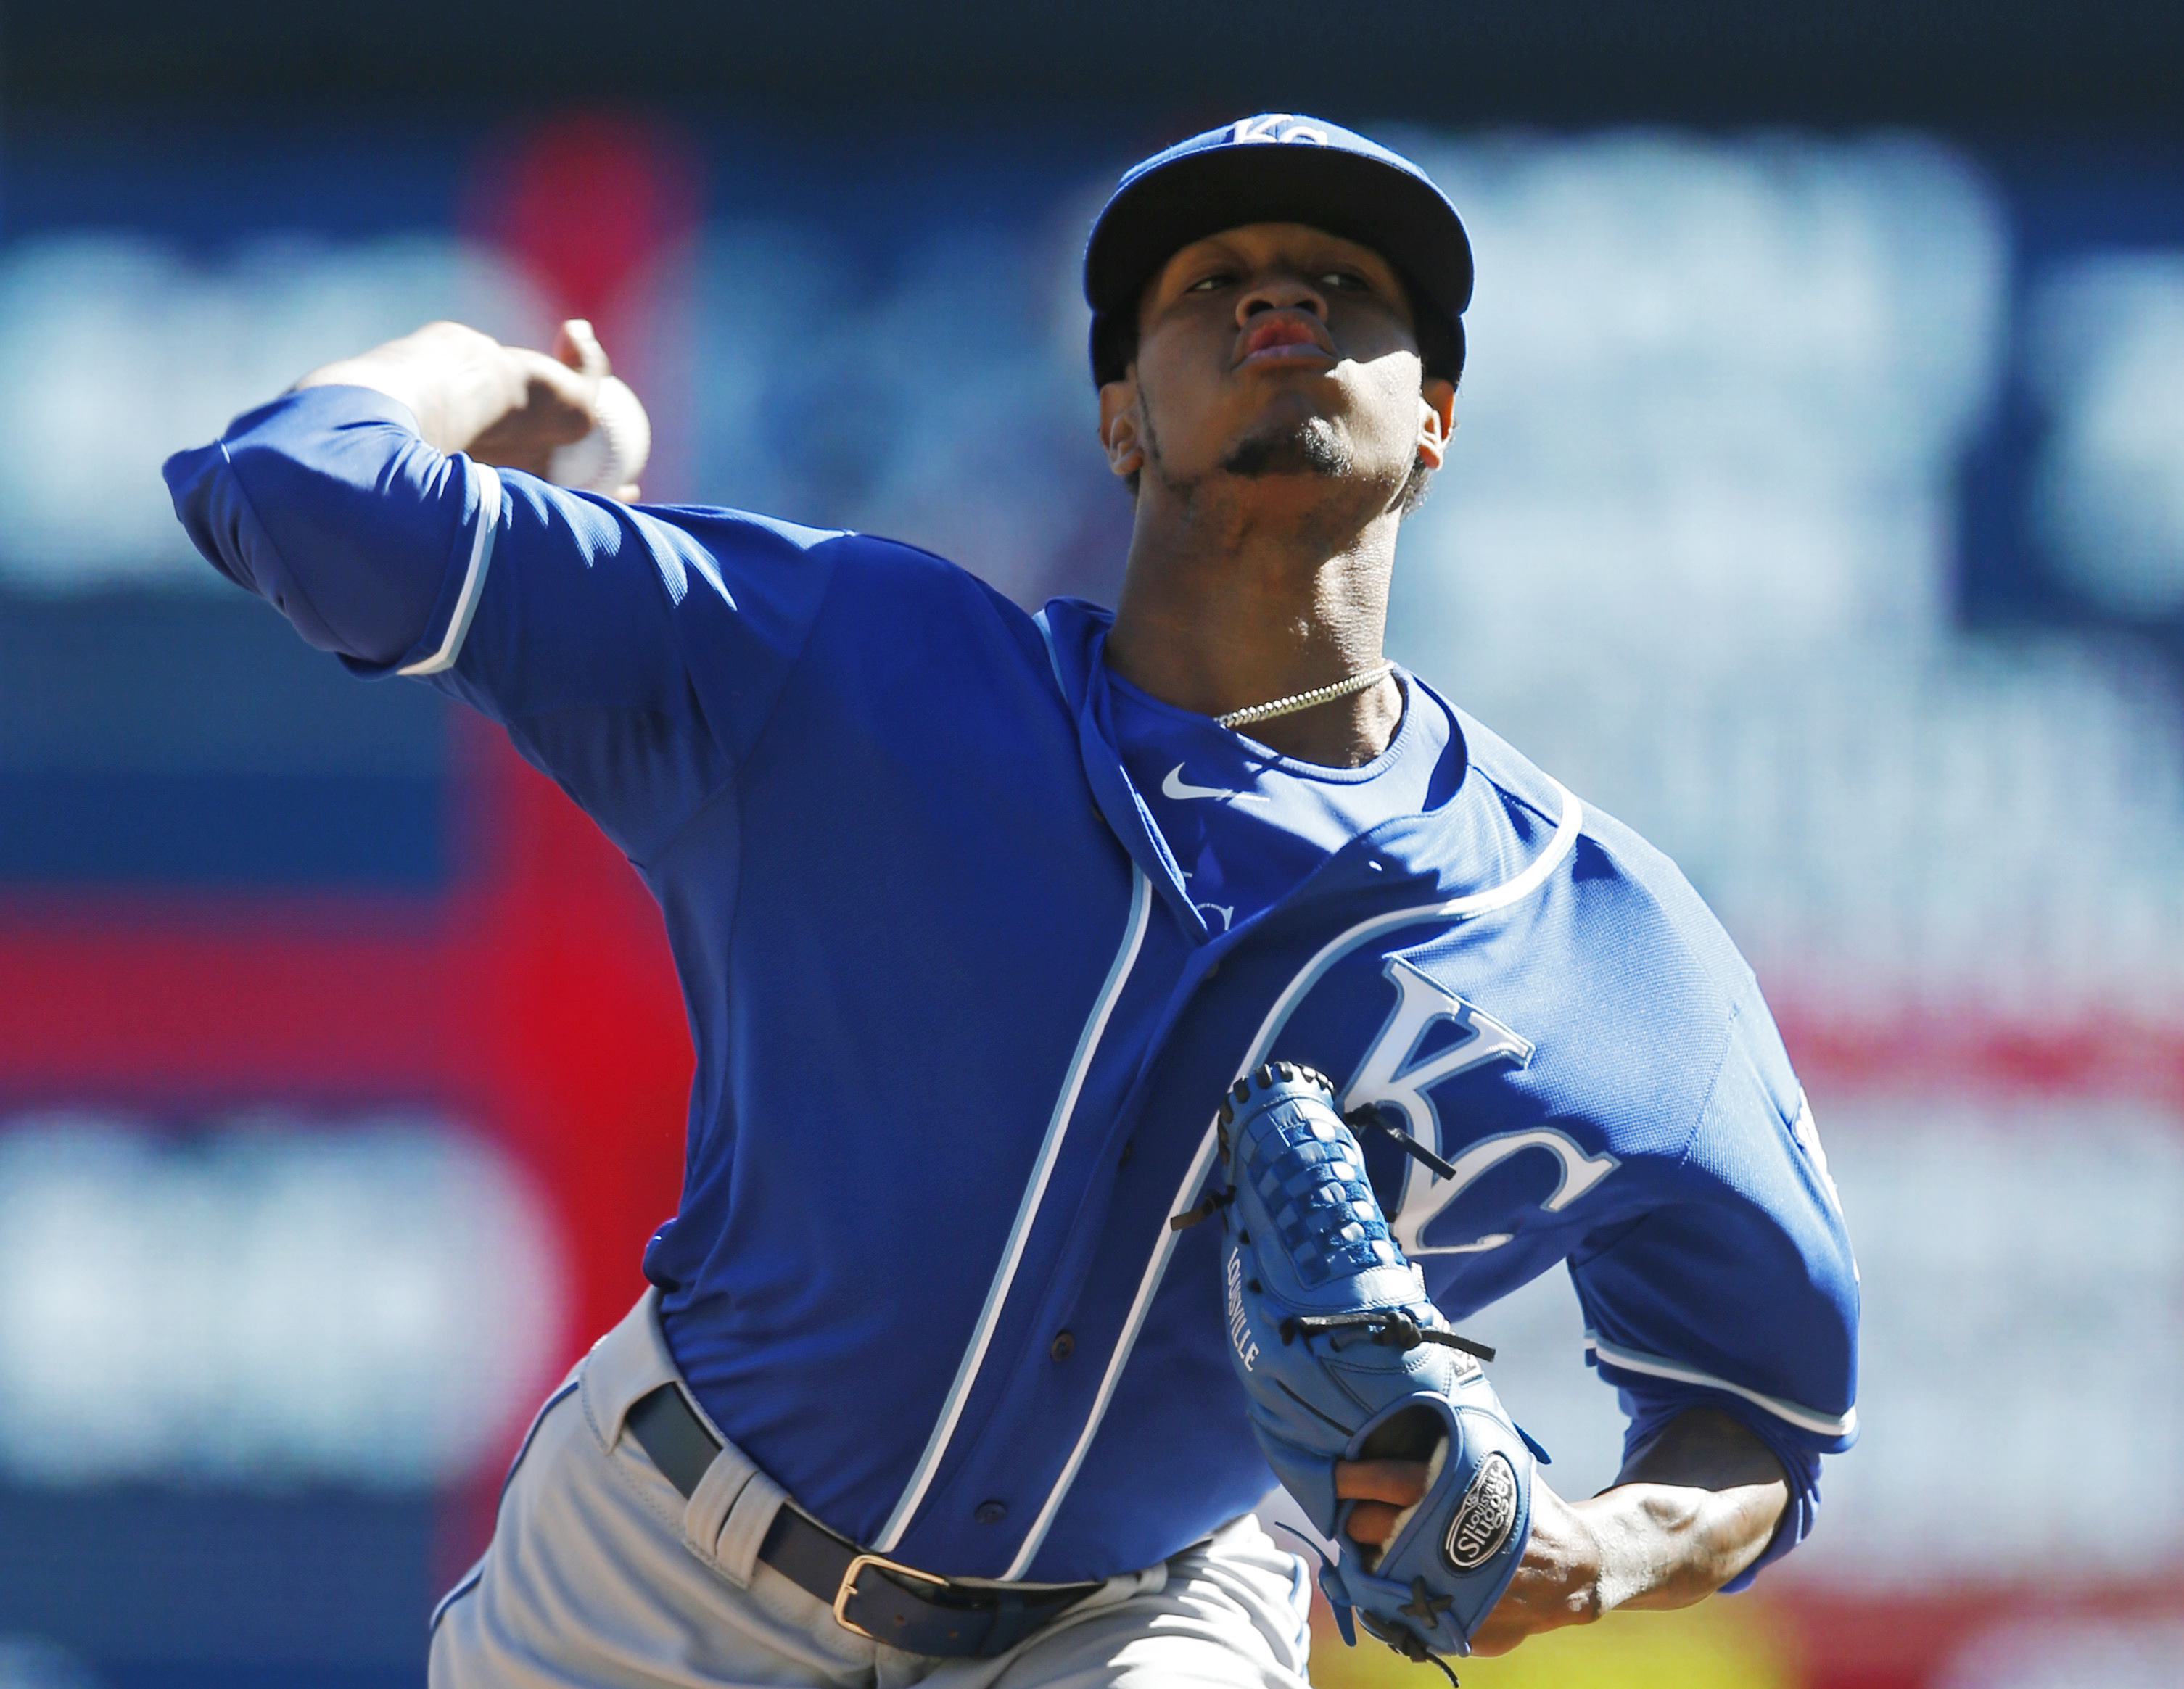 Kansas City Royals pitcher Yordano Ventura throws against the Minnesota Twins in the first inning of a baseball game, Saturday, Oct. 3, 2015, in Minneapolis. (AP Photo/Jim Mone)